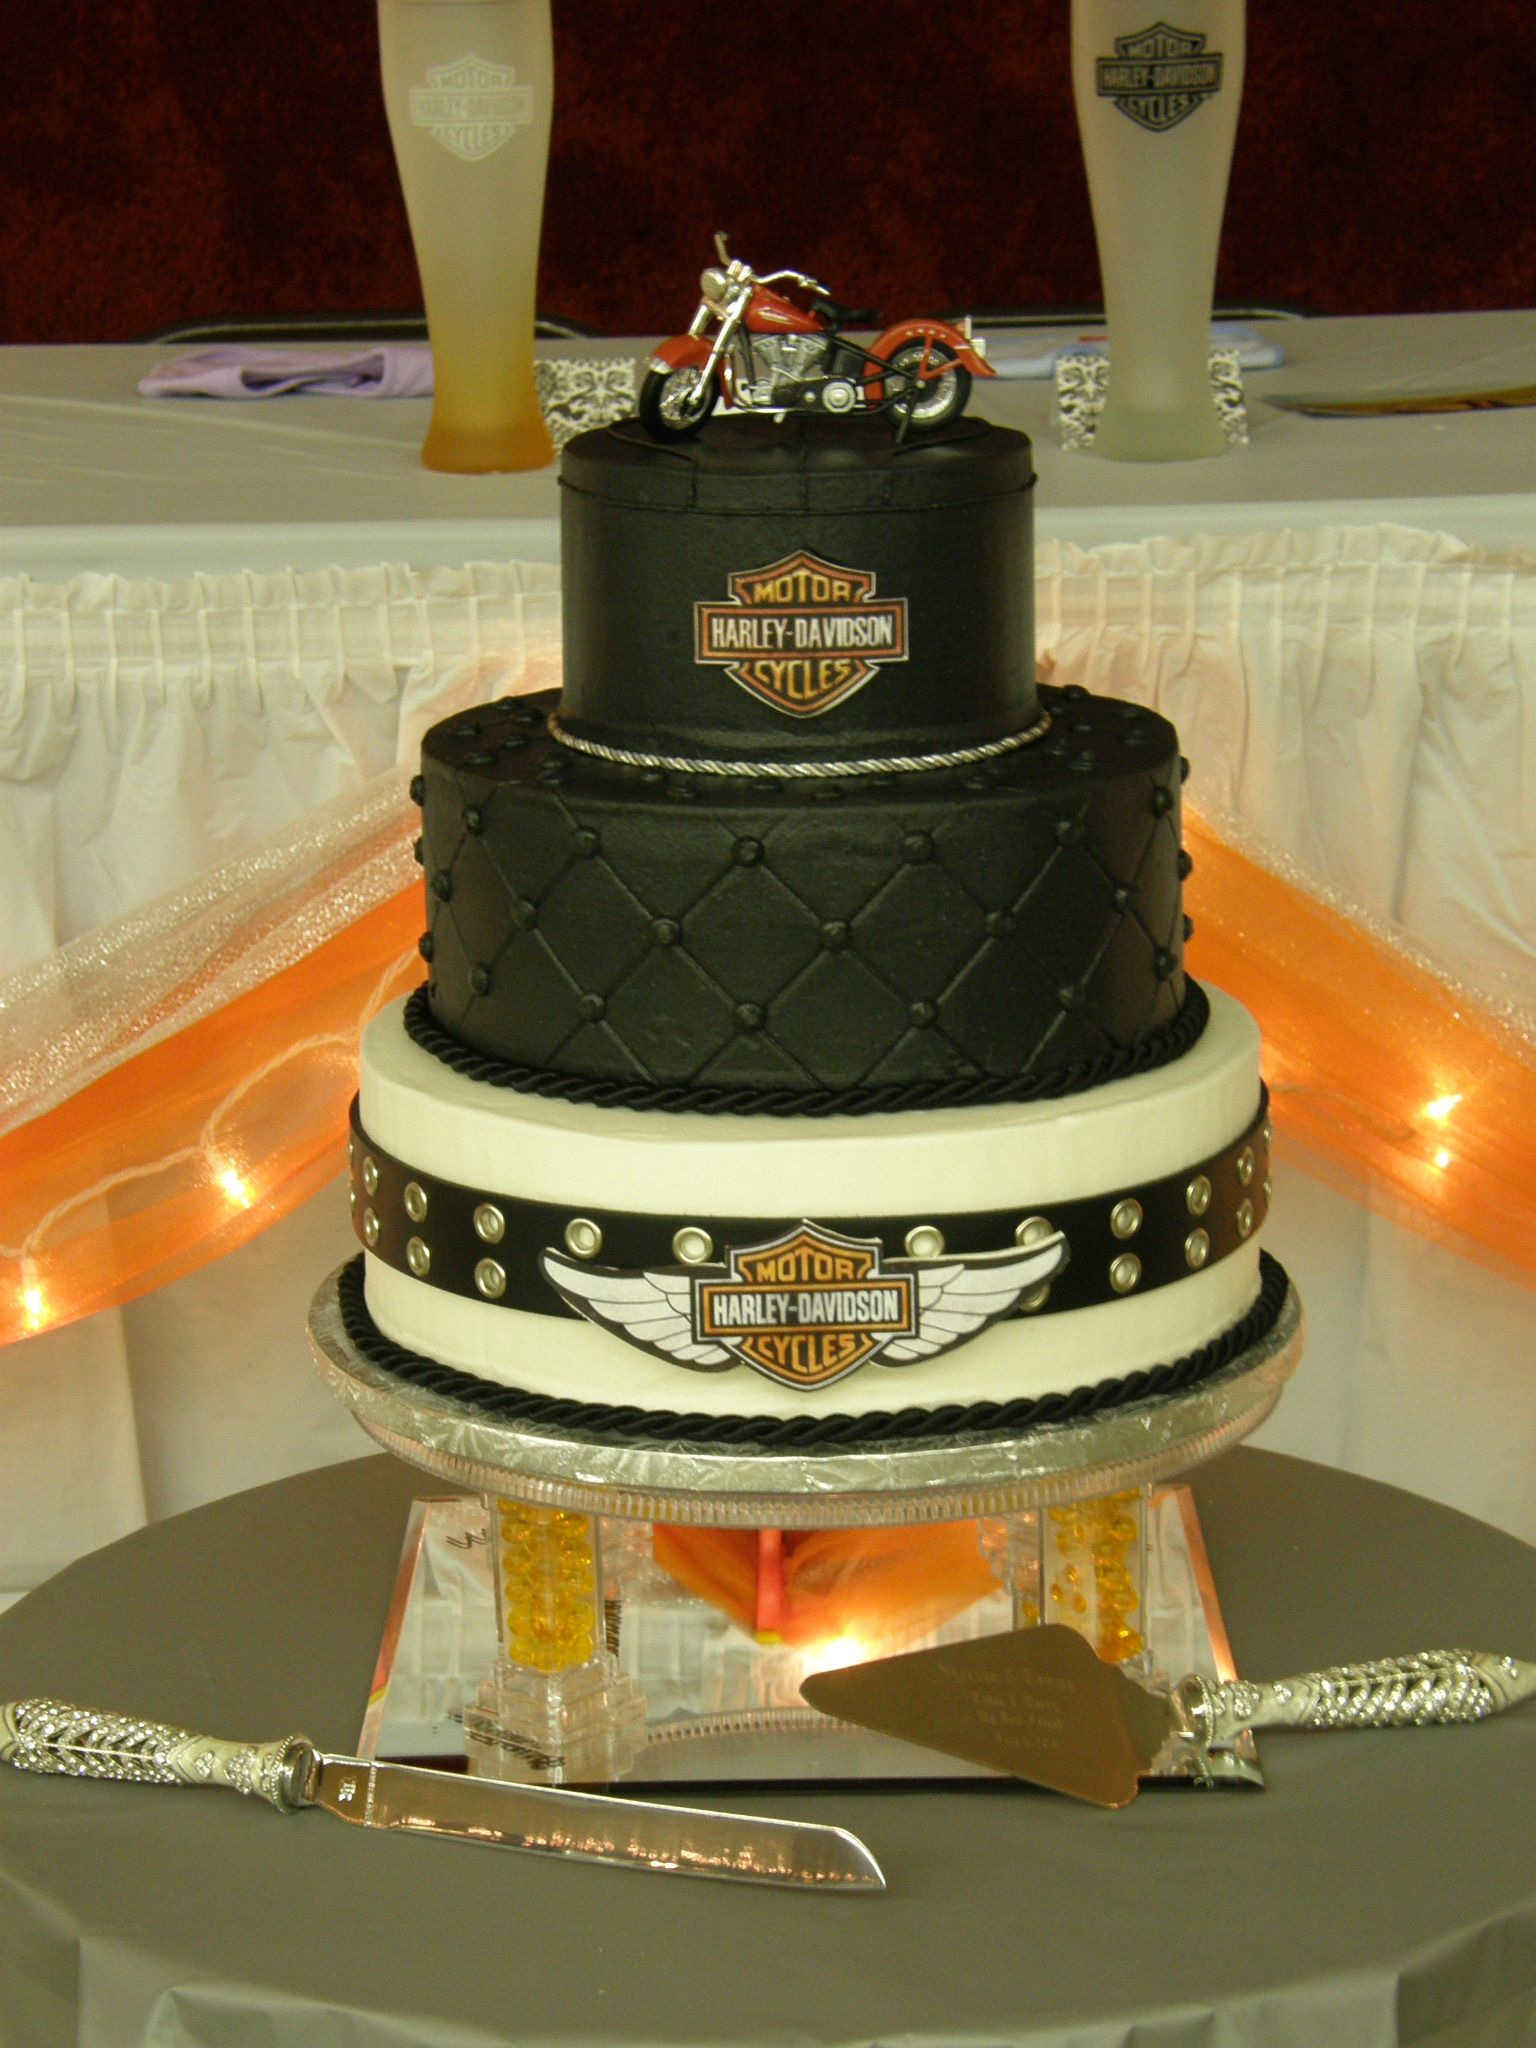 harley davidson wedding rings tiers stacked All buttercream Harley logos are printed from computer and glued to gumpaste cutouts with piping gel Top tier has piping to look like